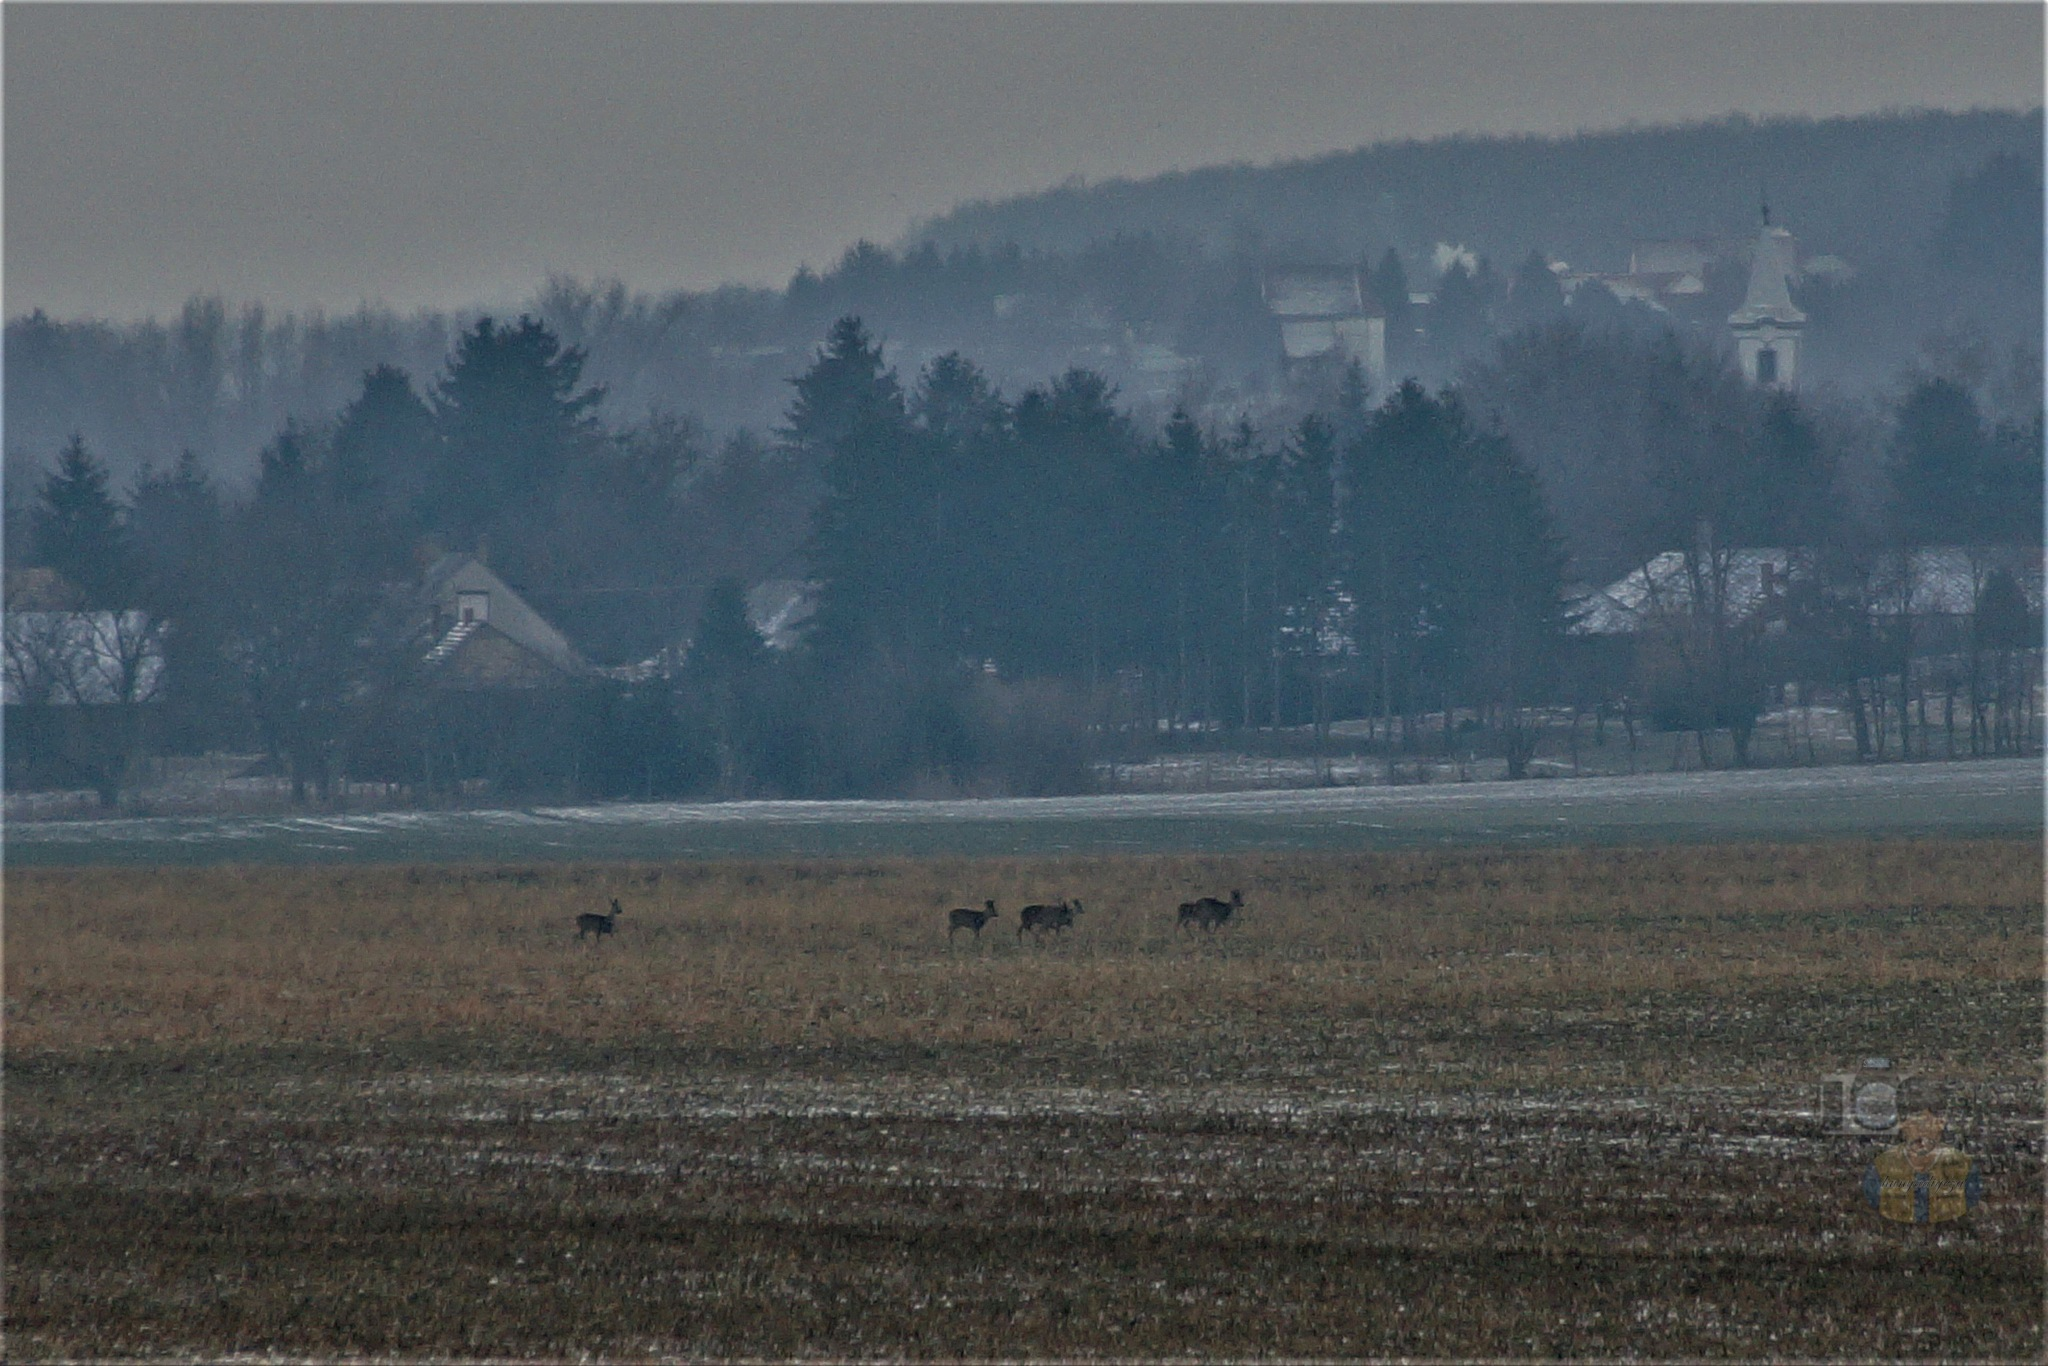 January 26, today, roe deer at the village in foggy frosty morning by hunyadigeza